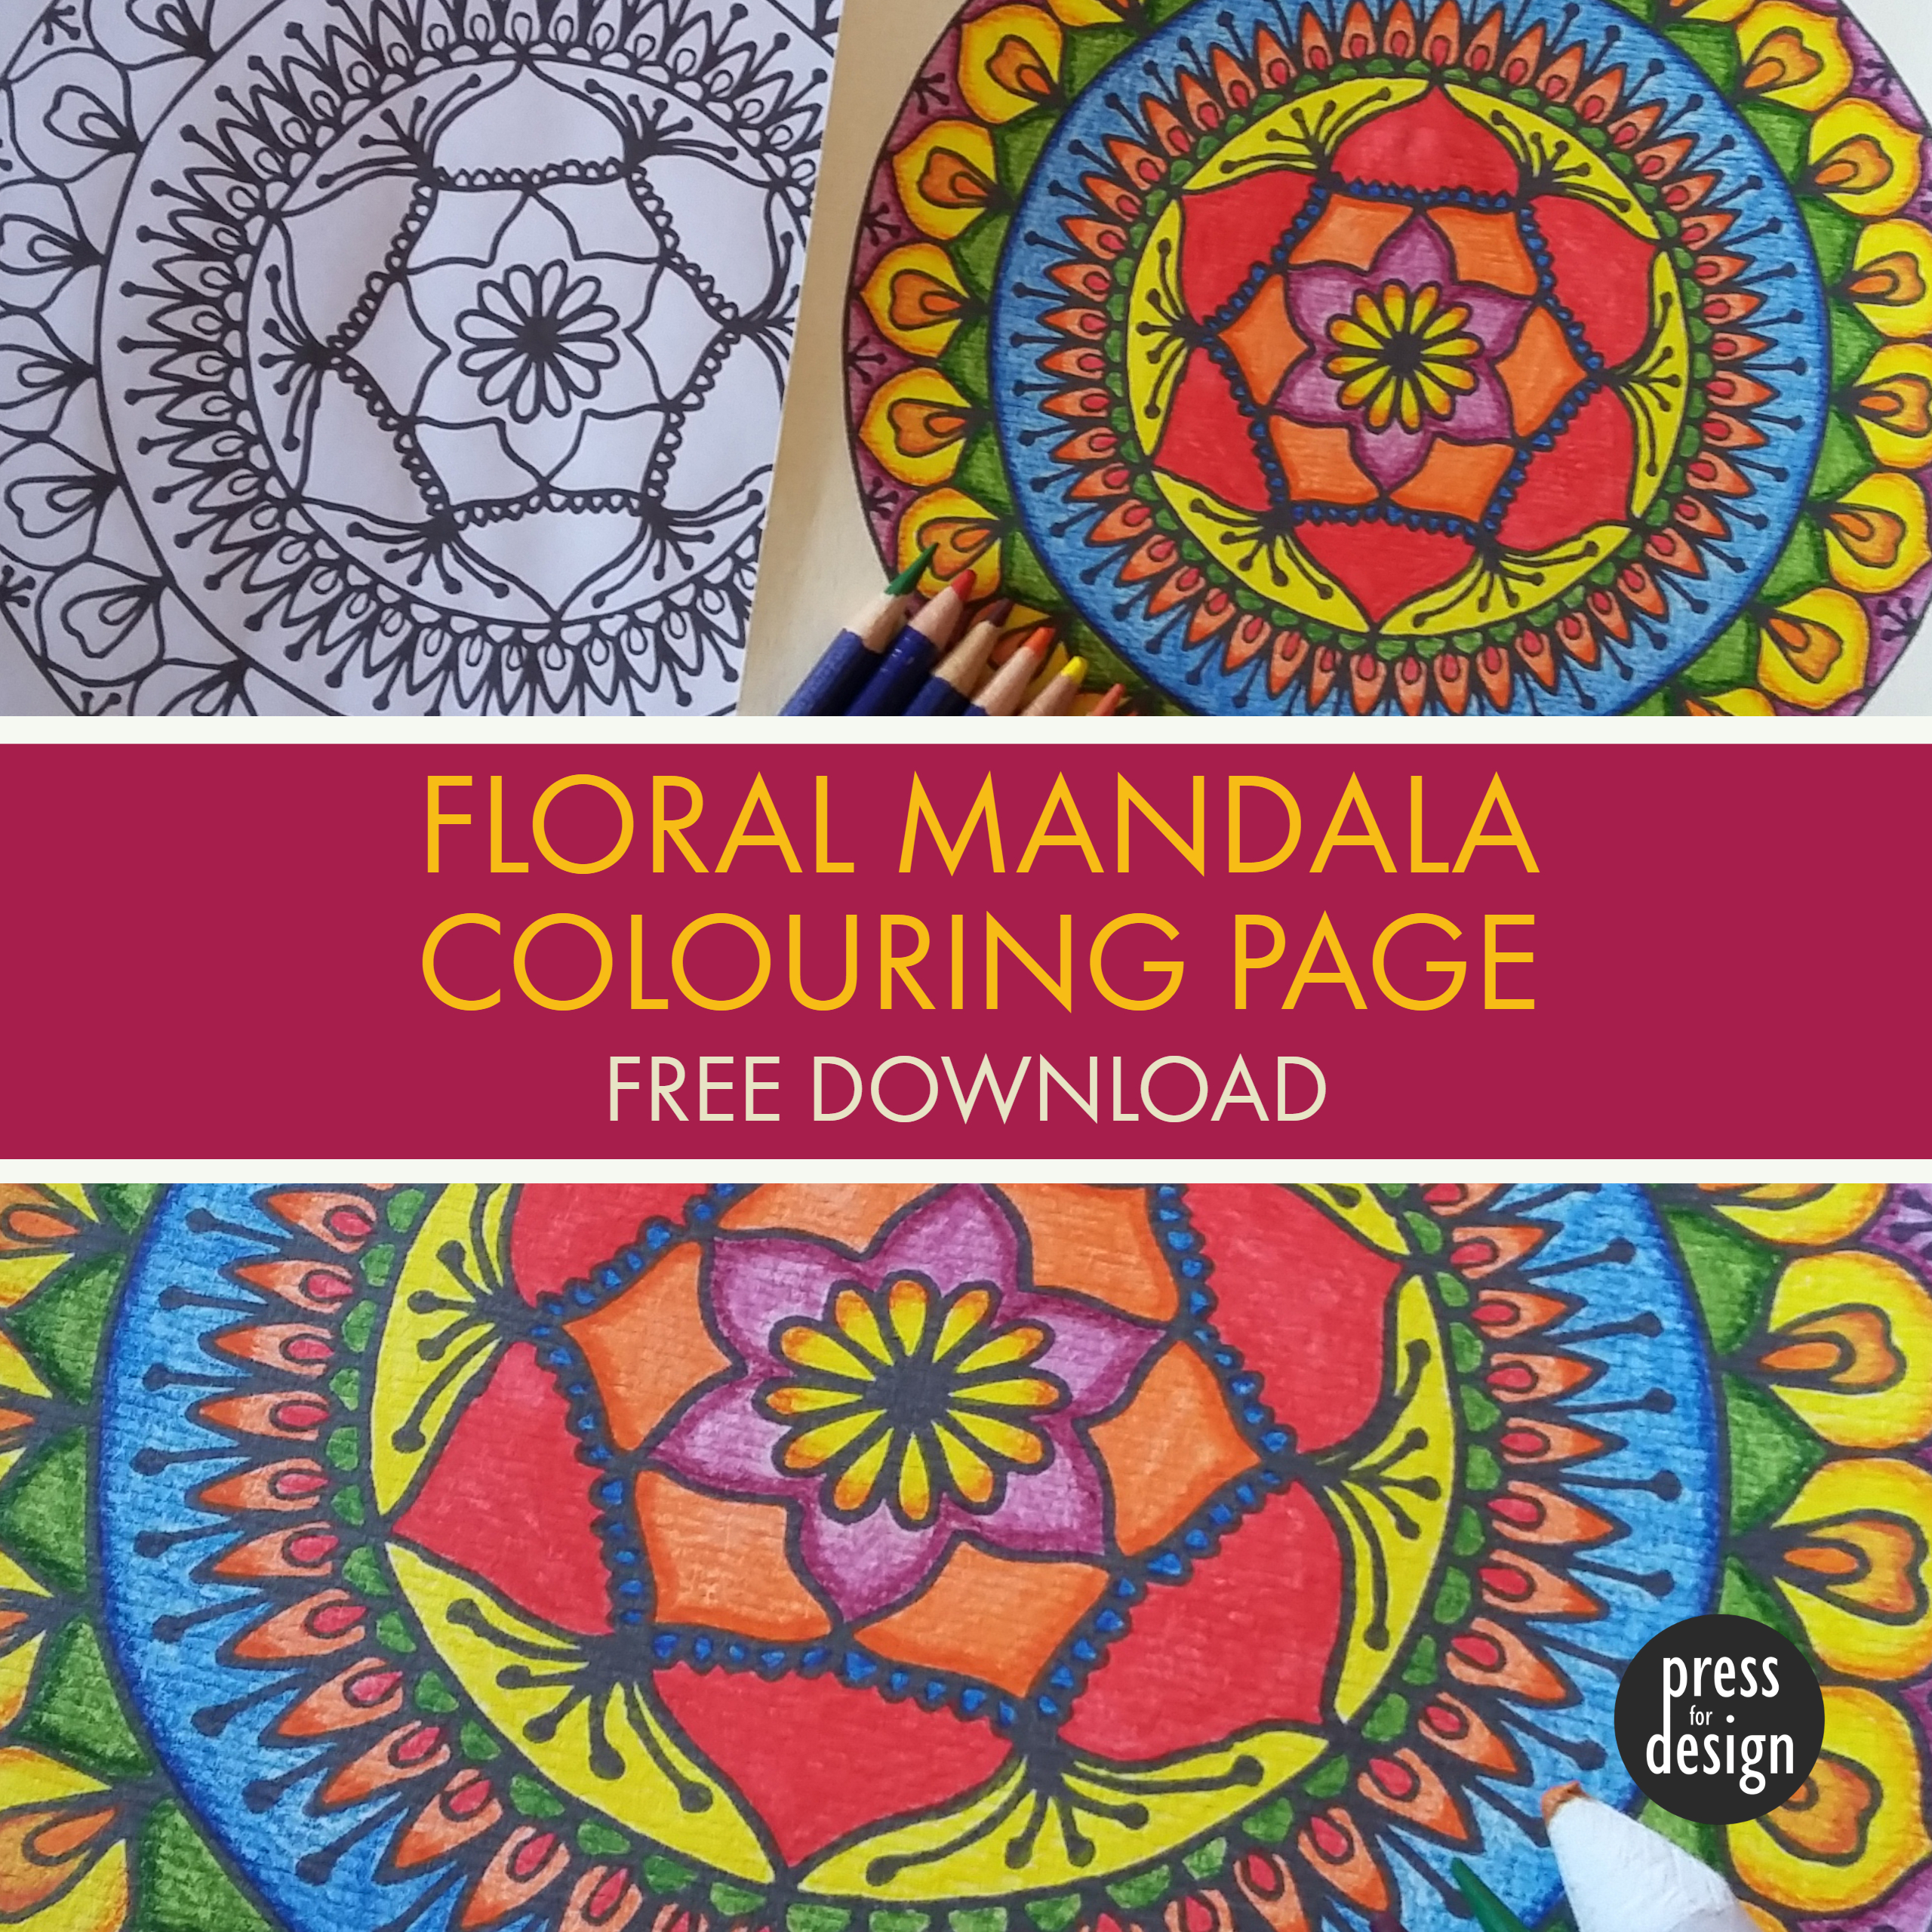 Crafty Download: Free Floral Mandala Colouring Page